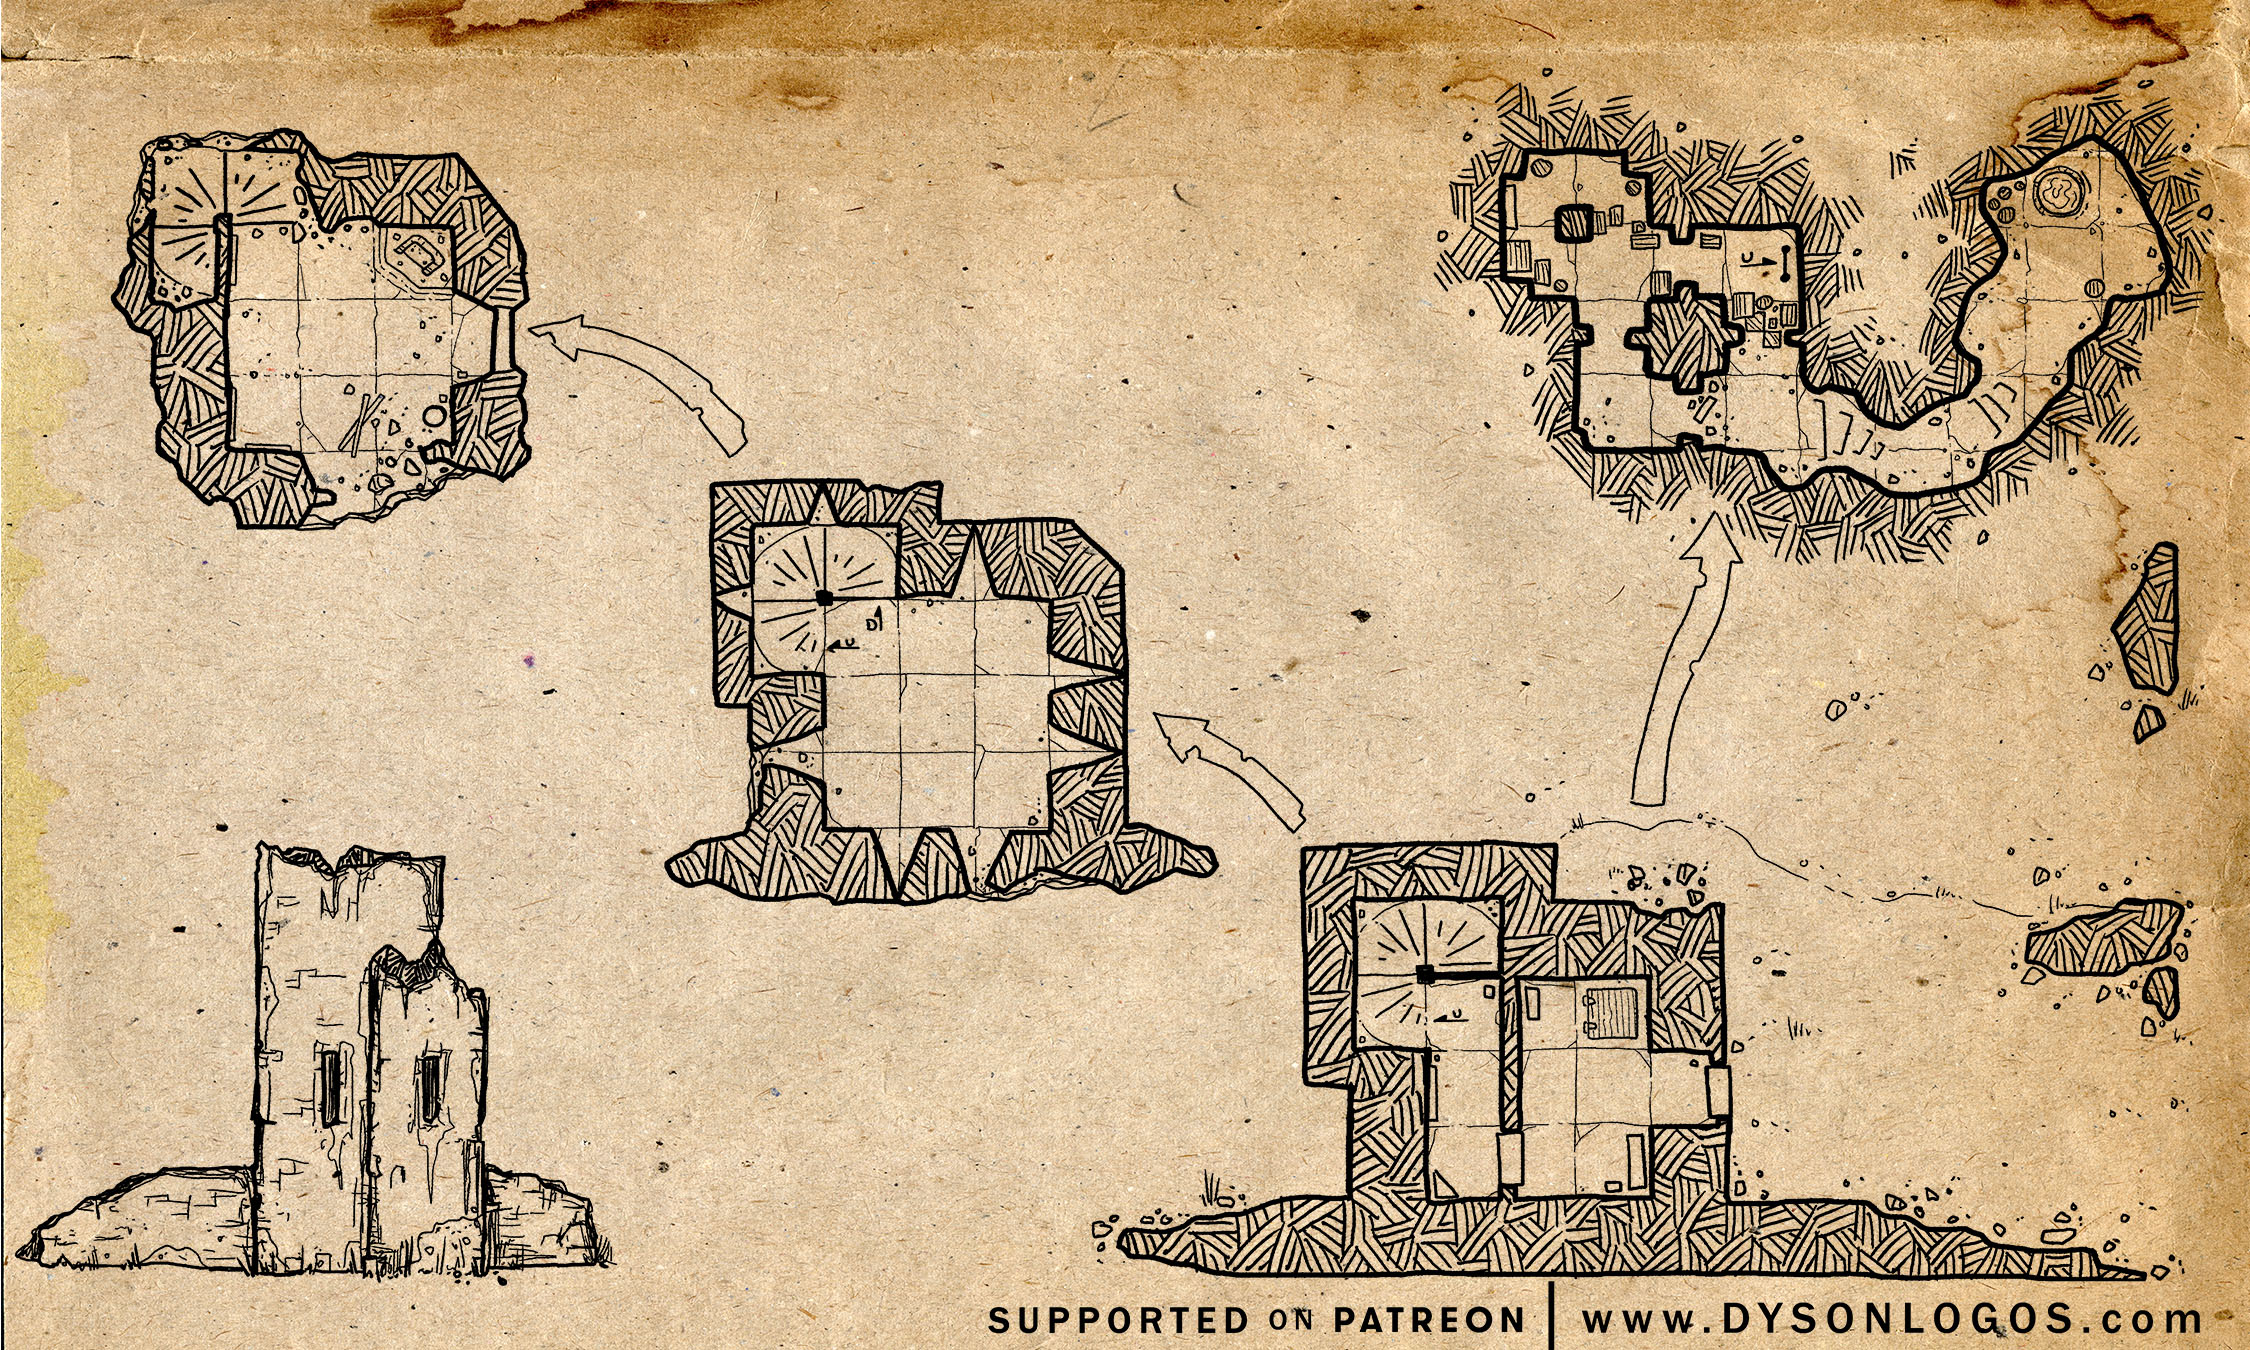 The ruins of Boar Isle Tower (300 dpi - no commercial license)